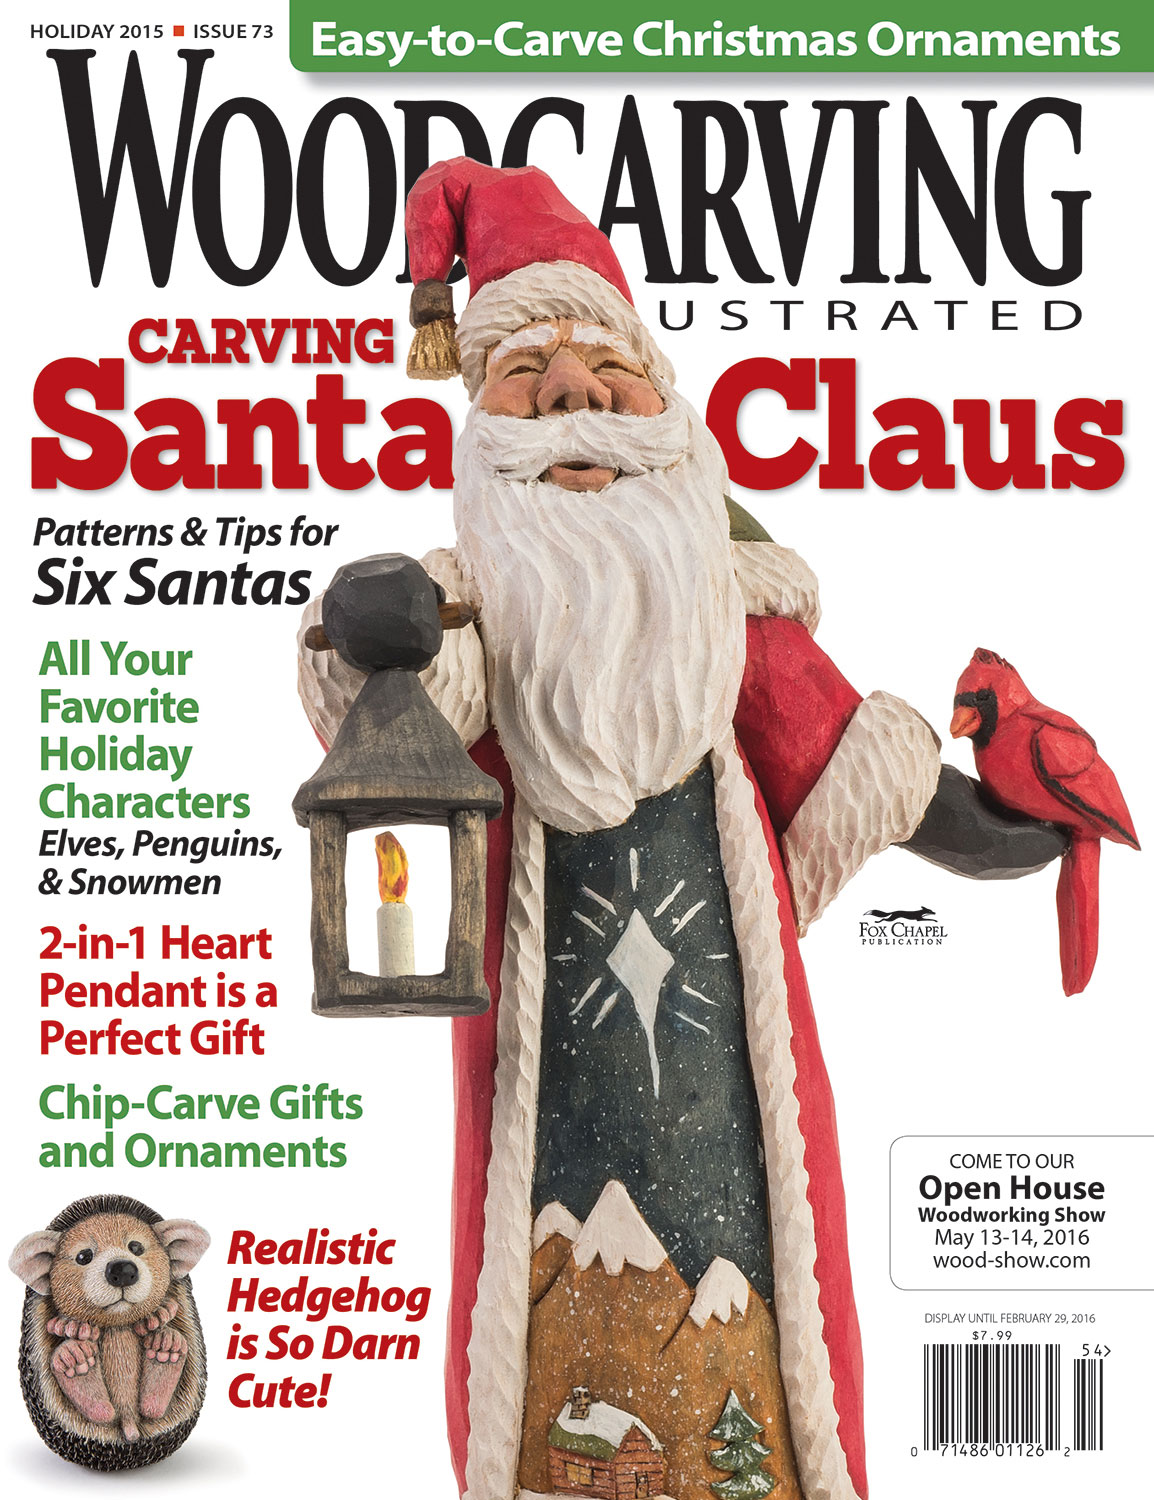 Woodcarving illustrated holiday issue